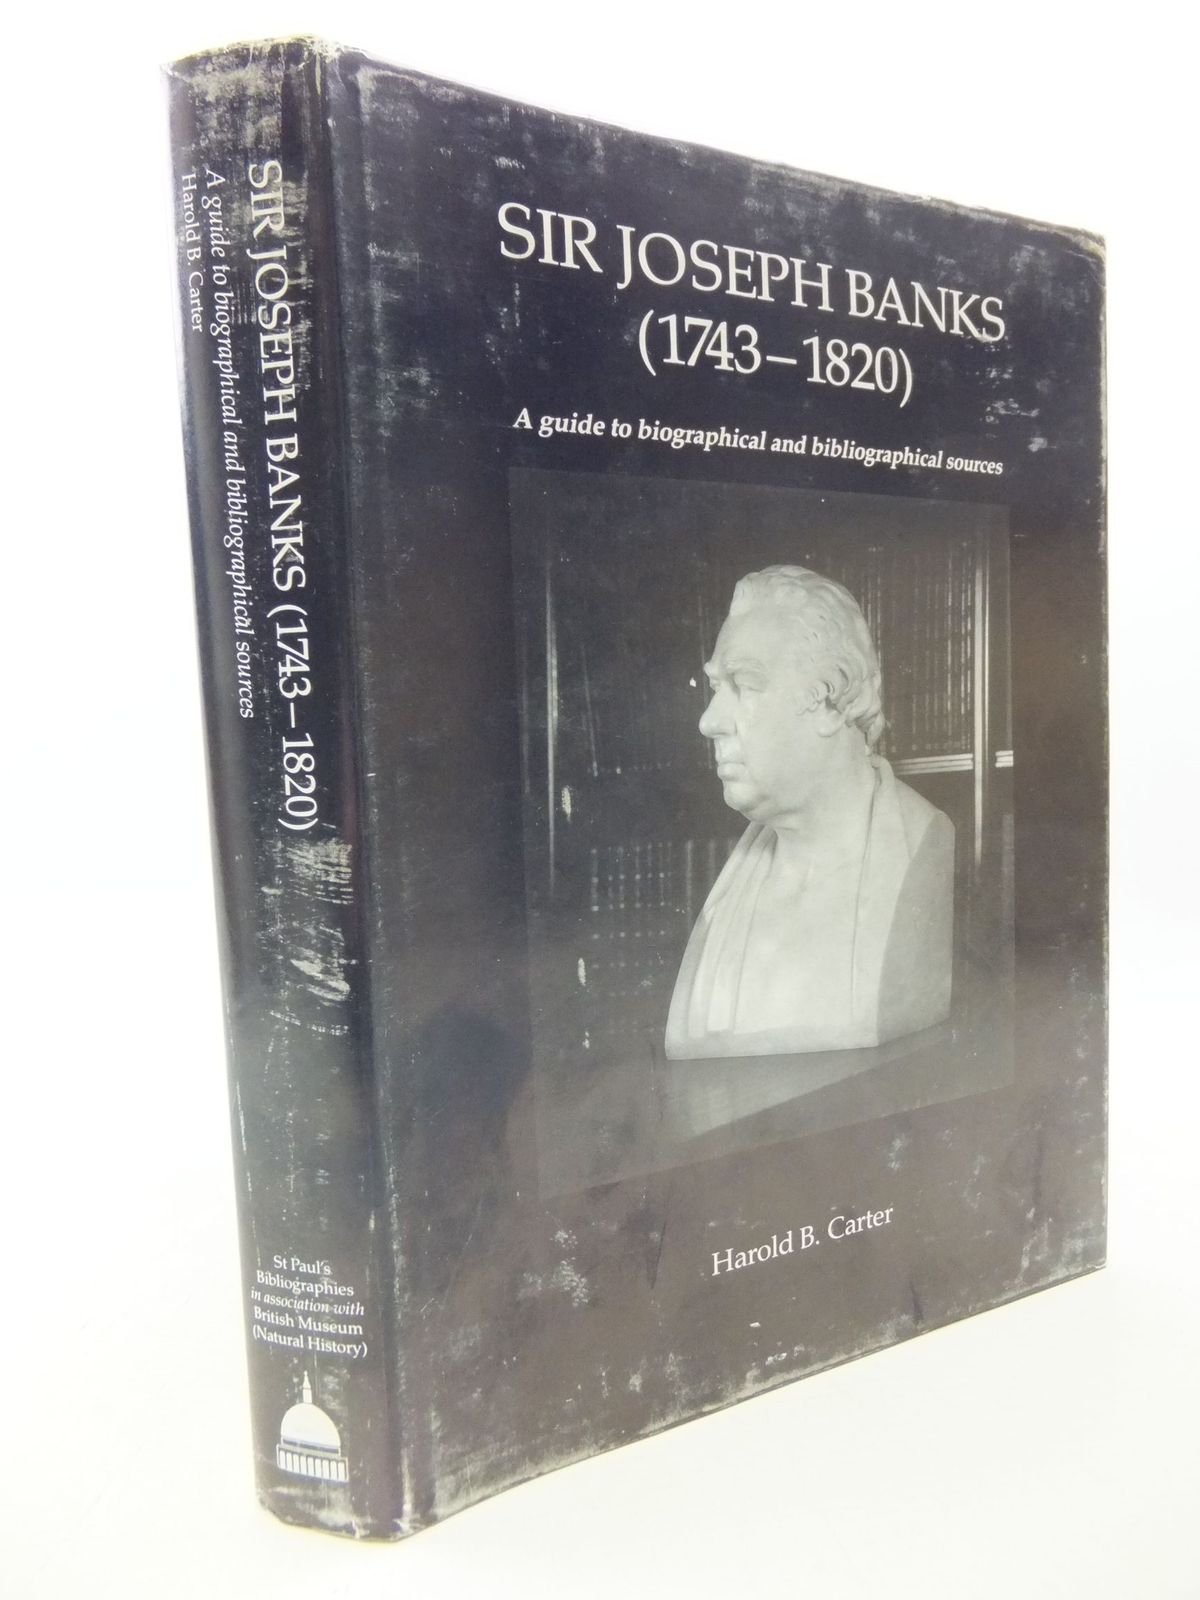 Photo of SIR JOSEPH BANKS 1743-1820 written by Carter, Harold published by St Paul's Bibliographies, British Museum (Natural History) (STOCK CODE: 1710743)  for sale by Stella & Rose's Books